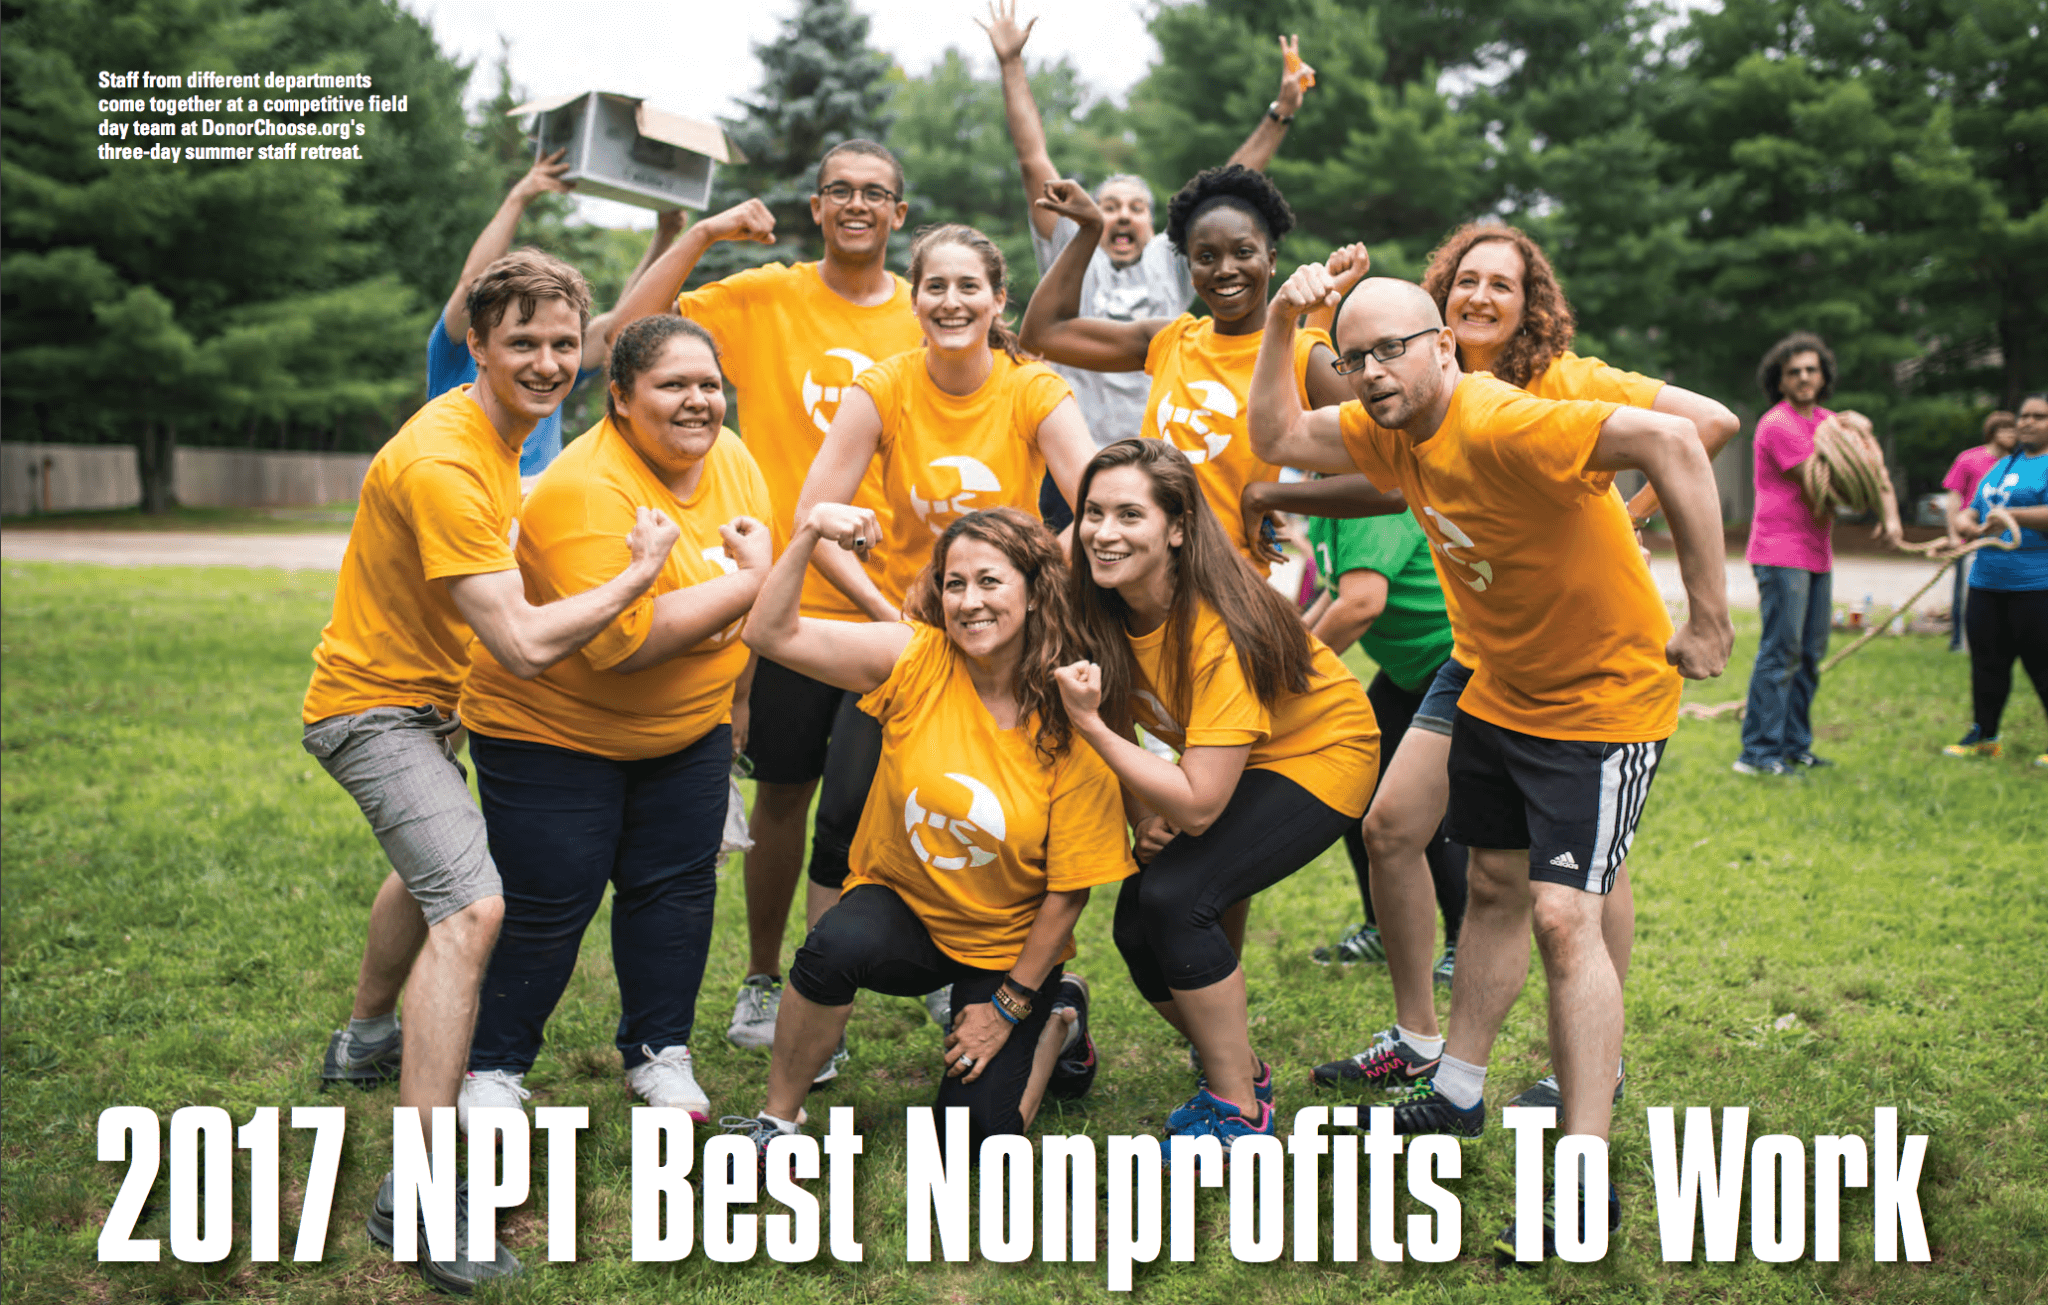 Best Nonprofits to Work for in 2017